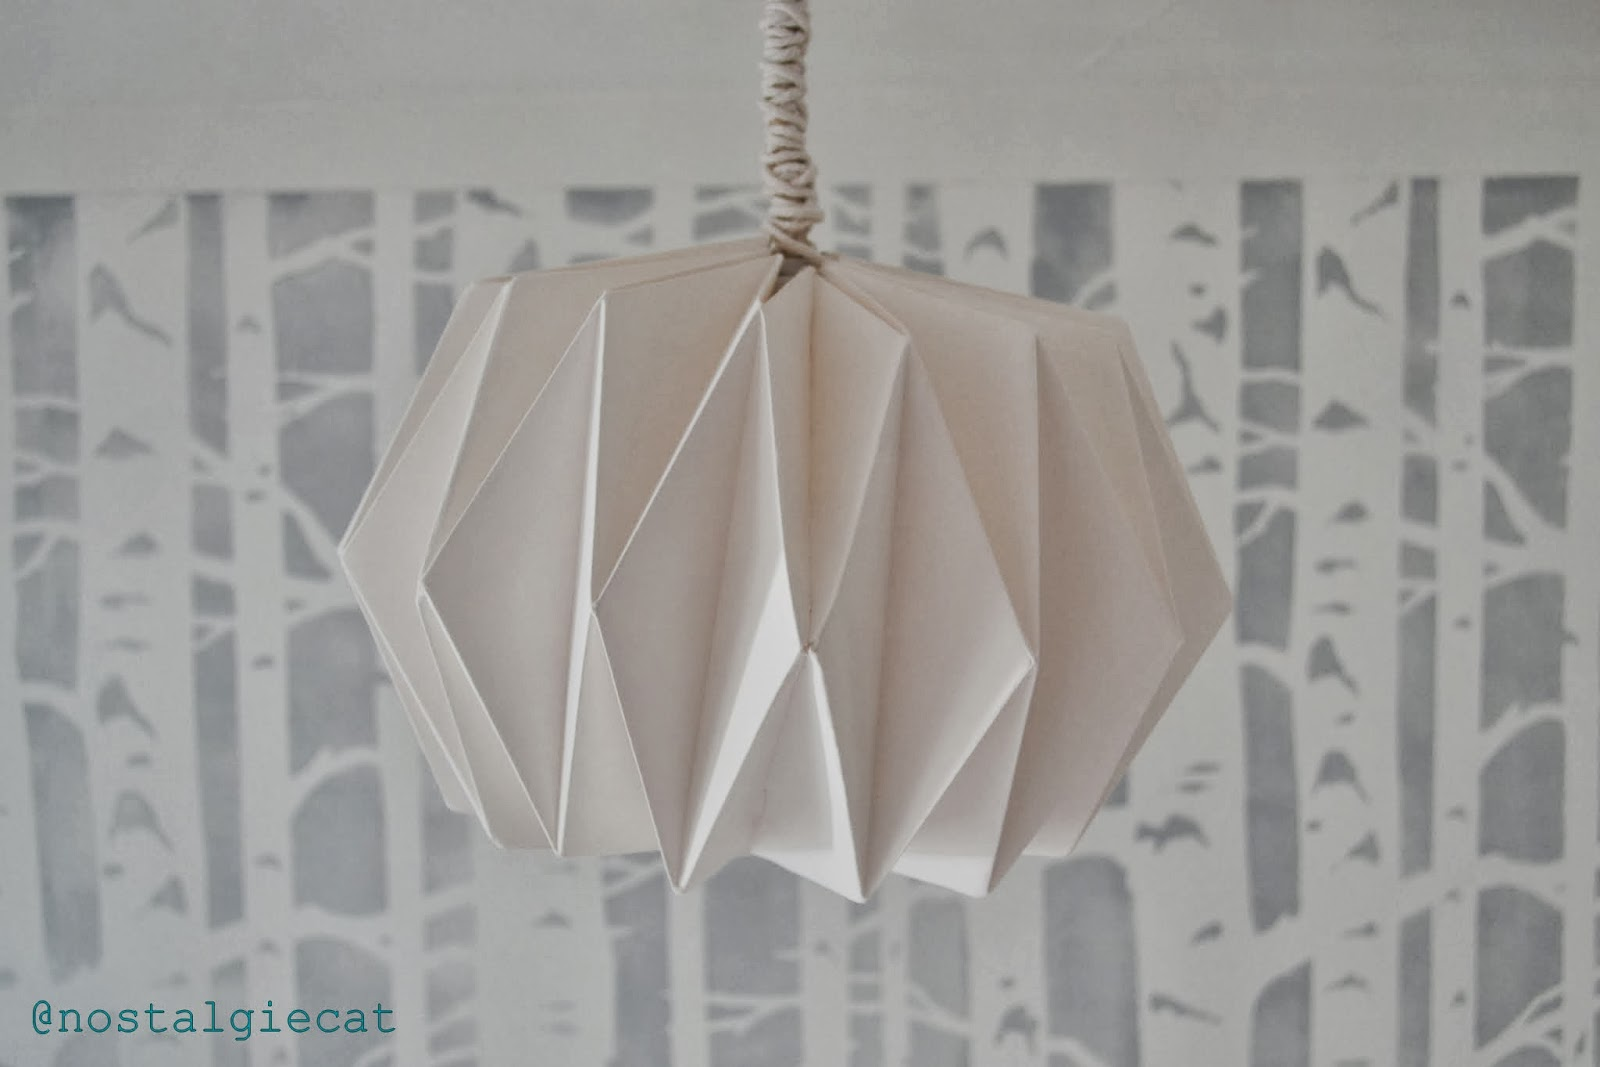 Nostalgiecat diy origami paper lampshade use a low wattage light bulb to further minimize any risk of fire aloadofball Images